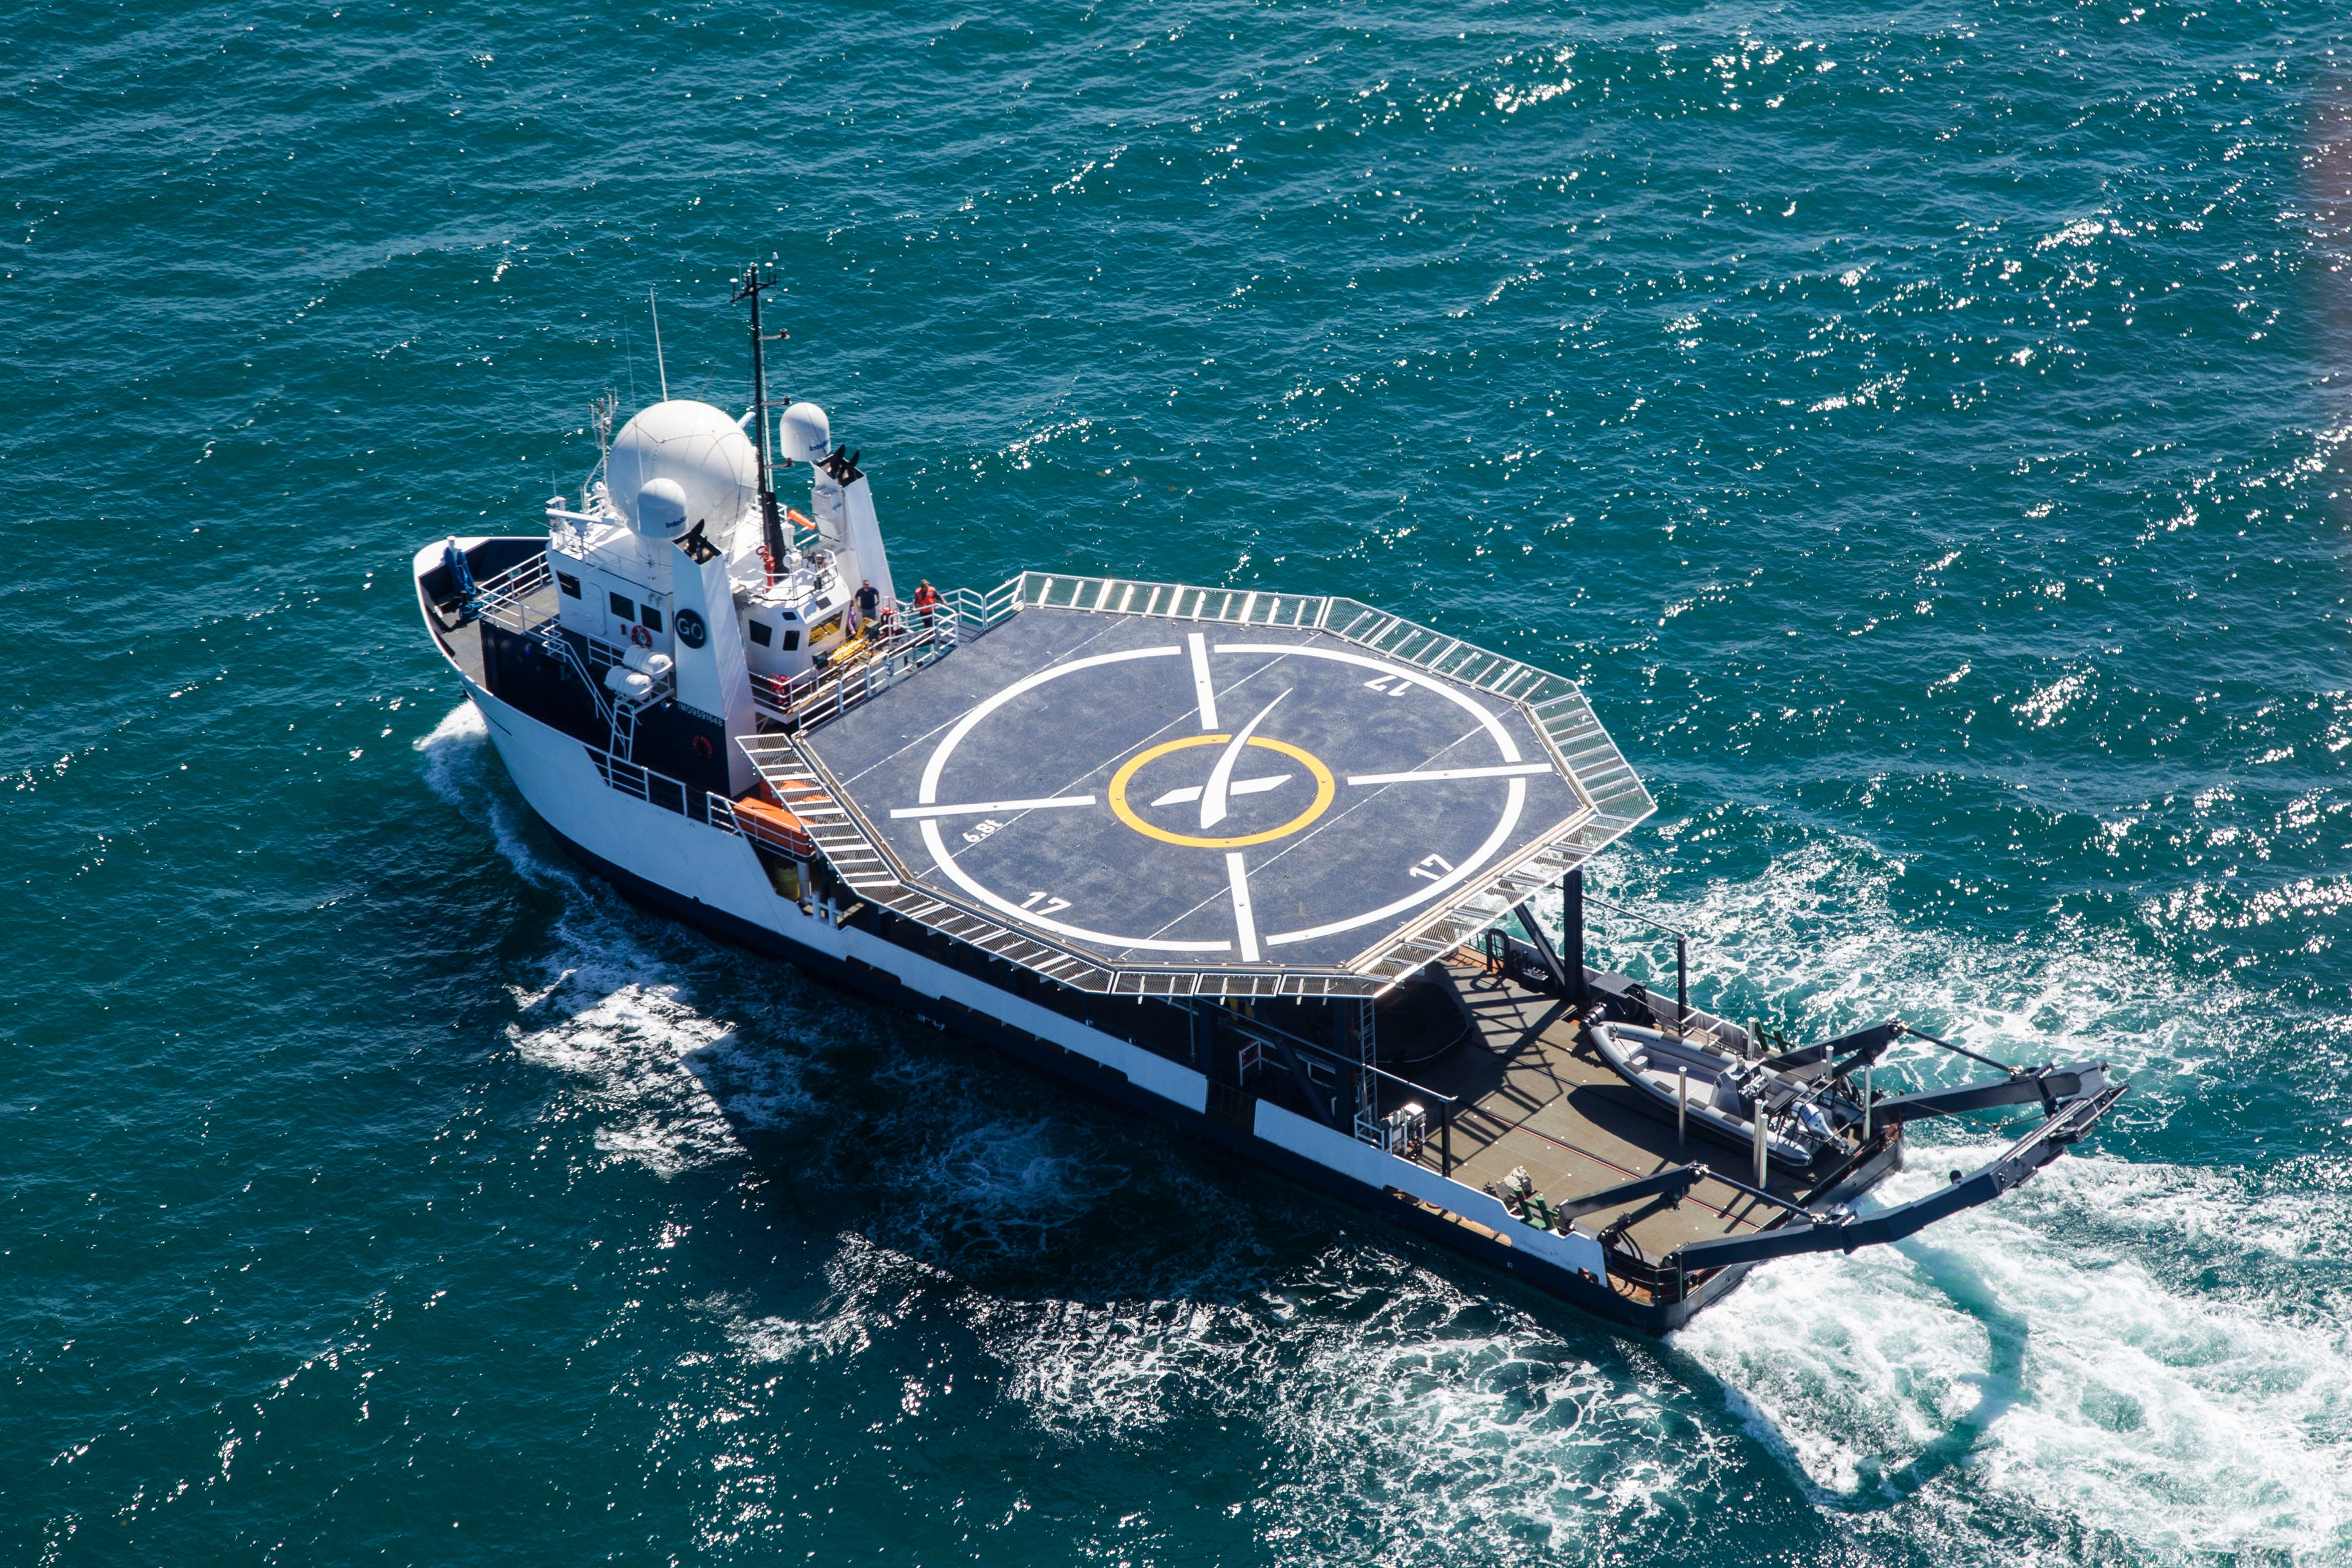 Go Searcher, another SpaceX ship, has been outfitted for recovery of astronauts from the company's Crew Dragon spacecraft.